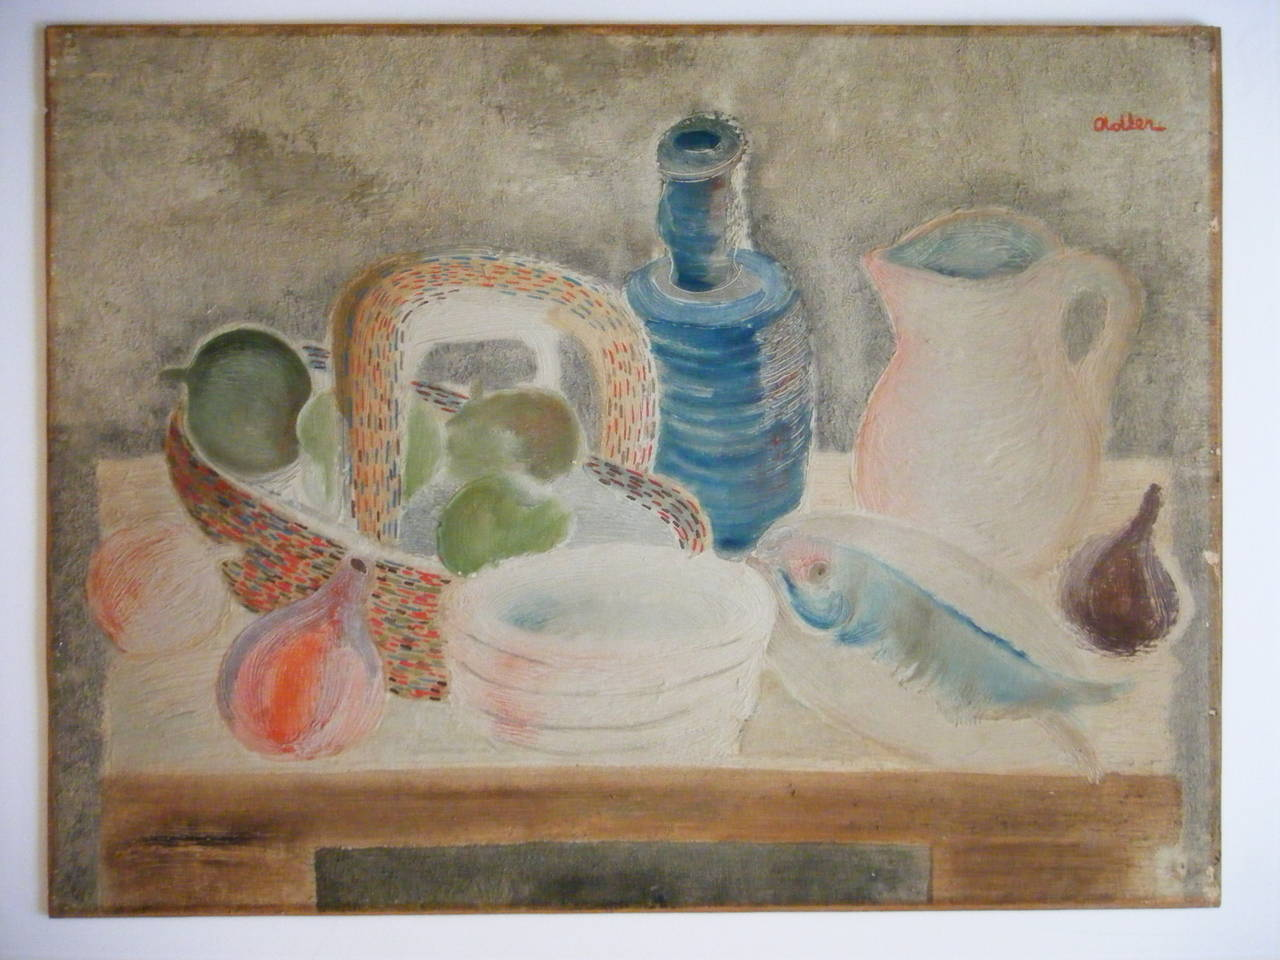 Still Life with Fish and Bottle - Painting by Jankel Adler